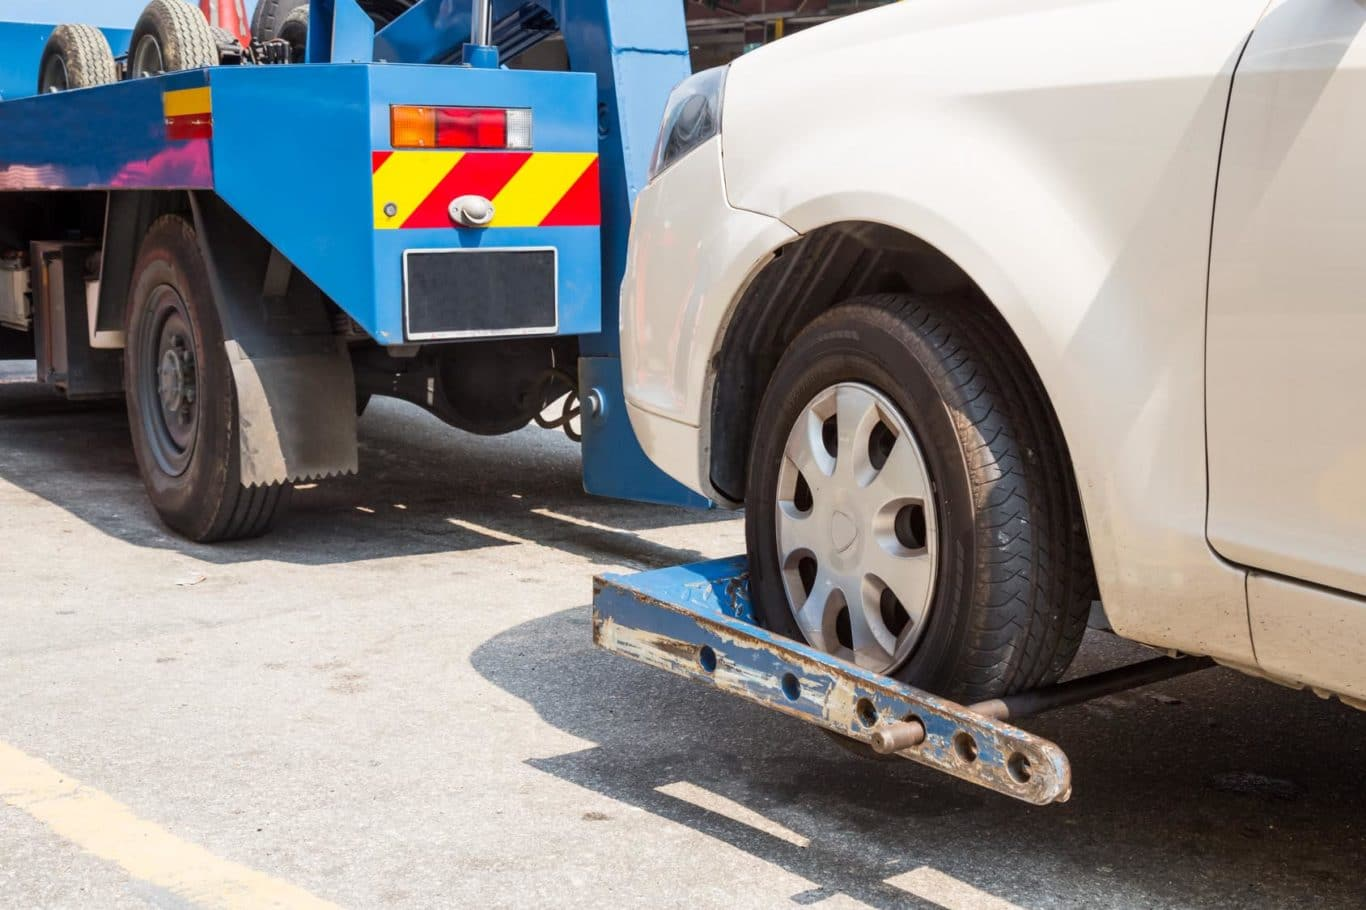 Donnybrook expert Towing services